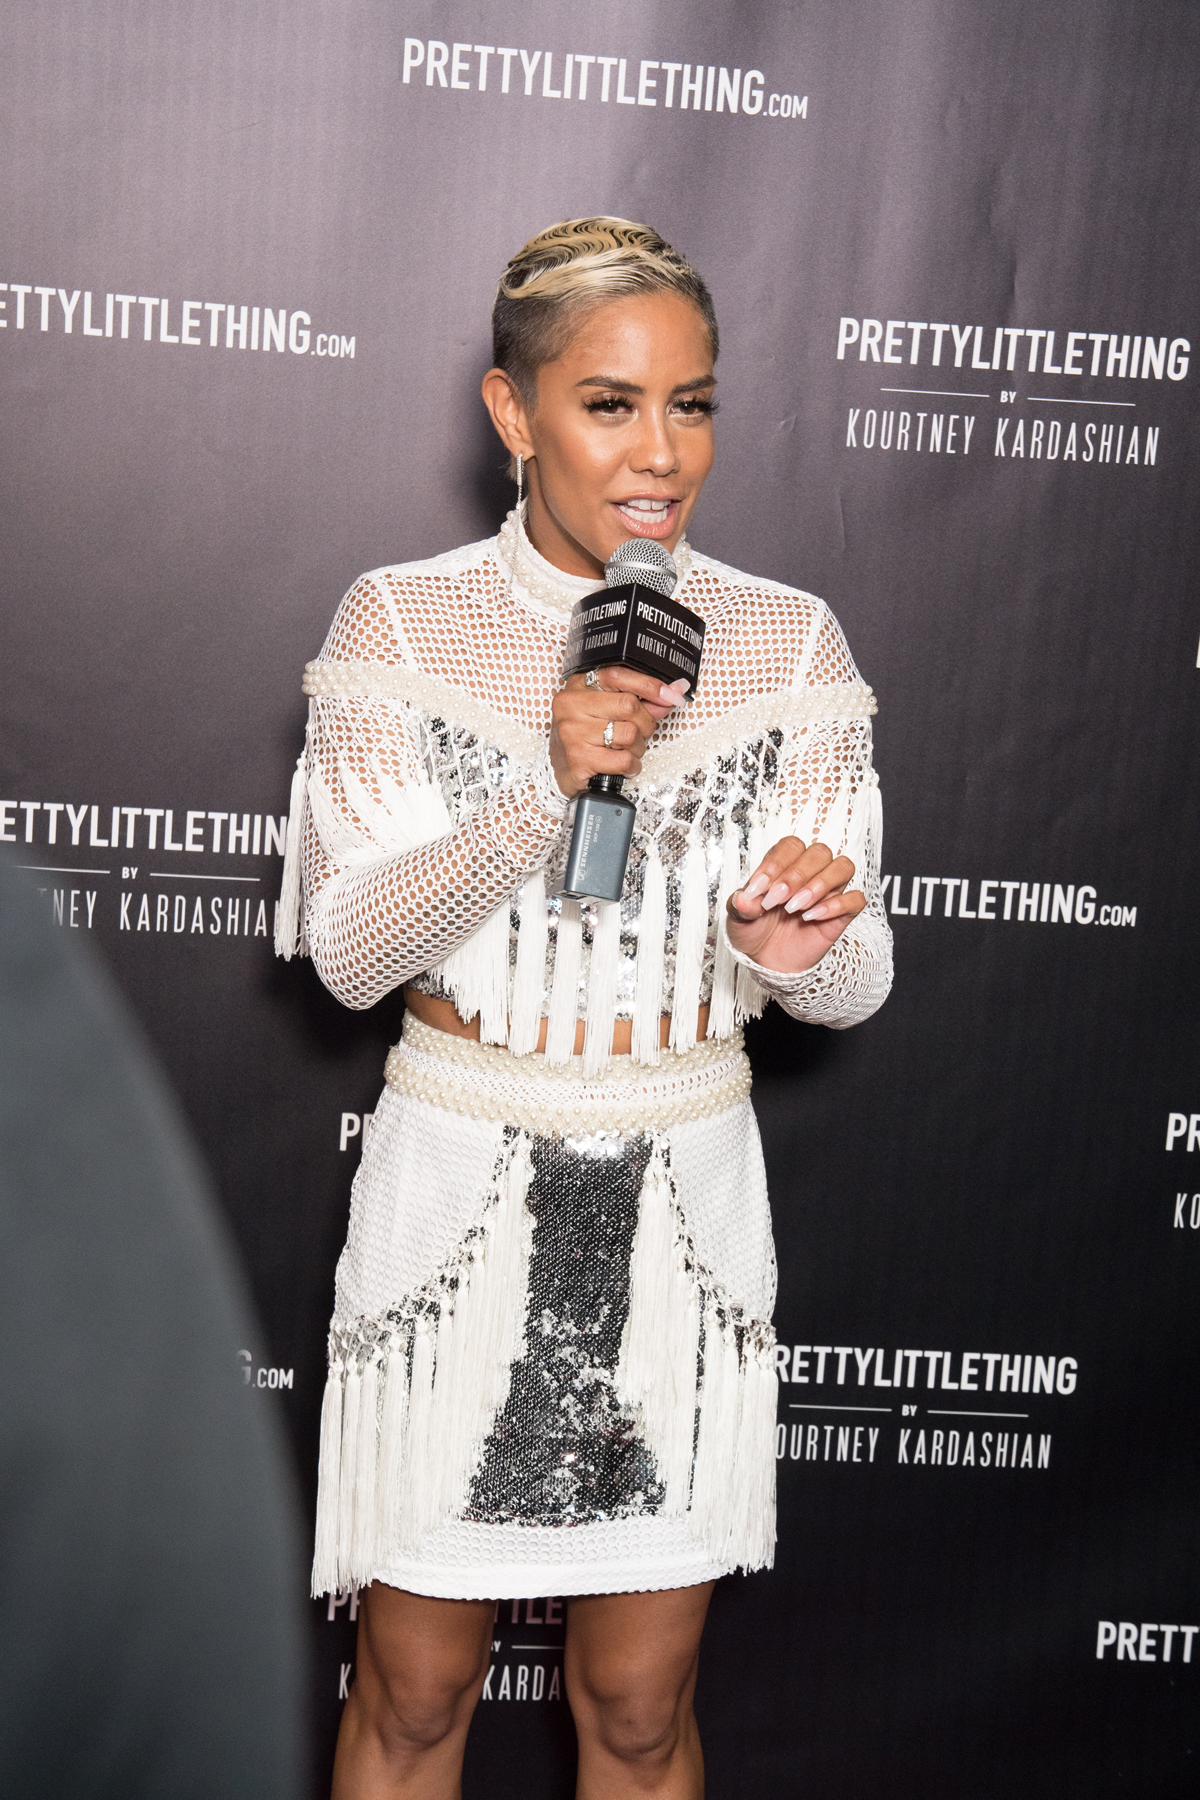 PrettyLittleThing PLT X Kourtney Kardashian Collection Celebrity Launch Party Sibley Scloes.jpg